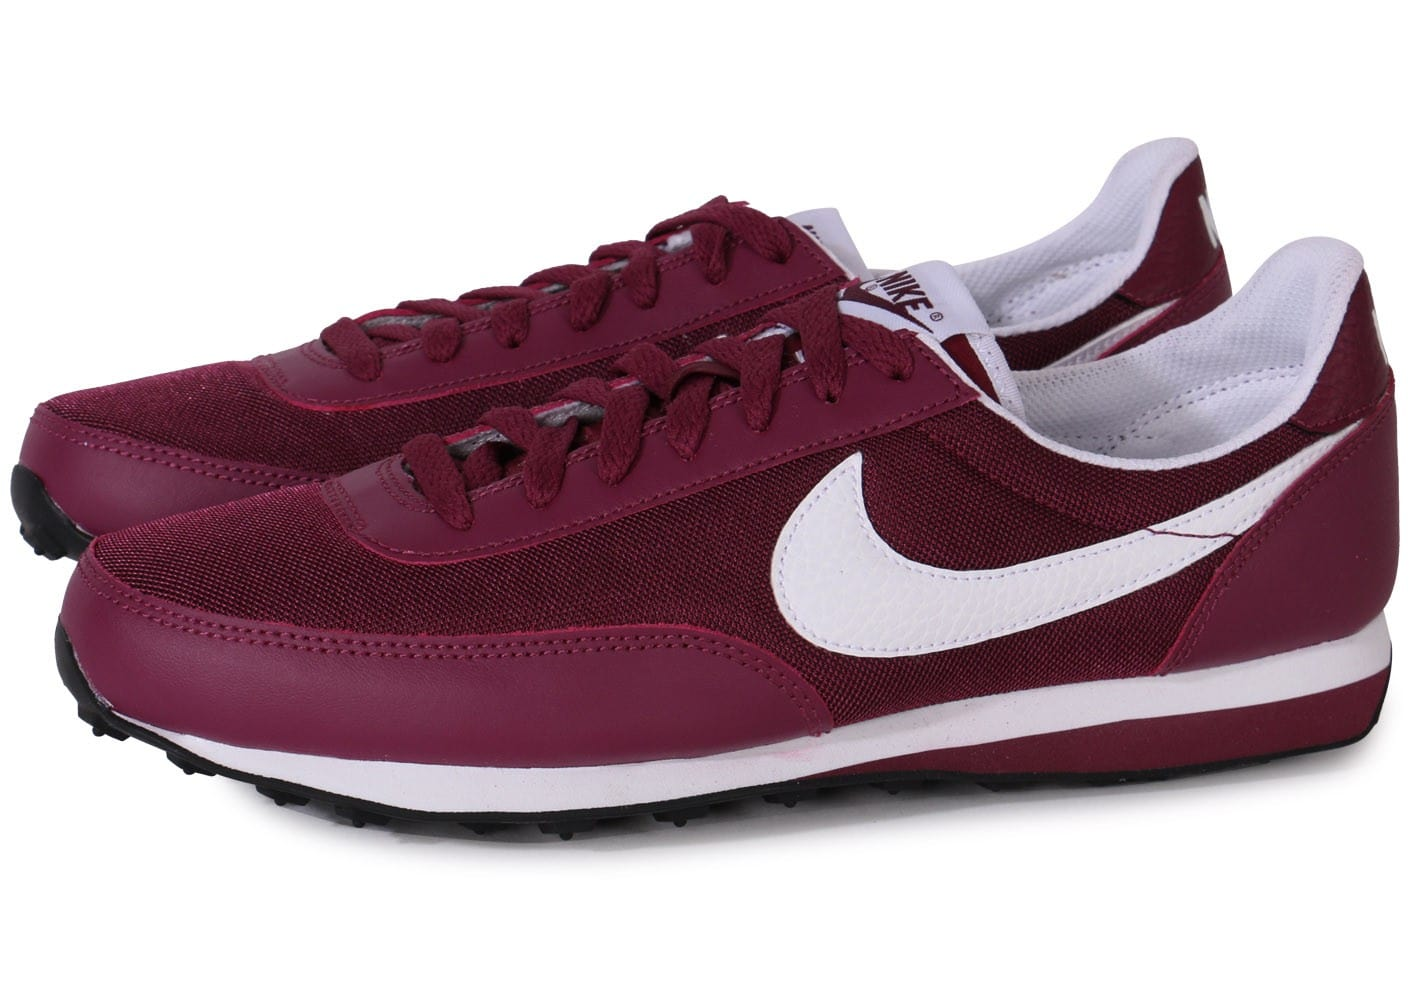 Elite Chaussures Chausport Bordeaux Nike Baskets Homme On0wPk8